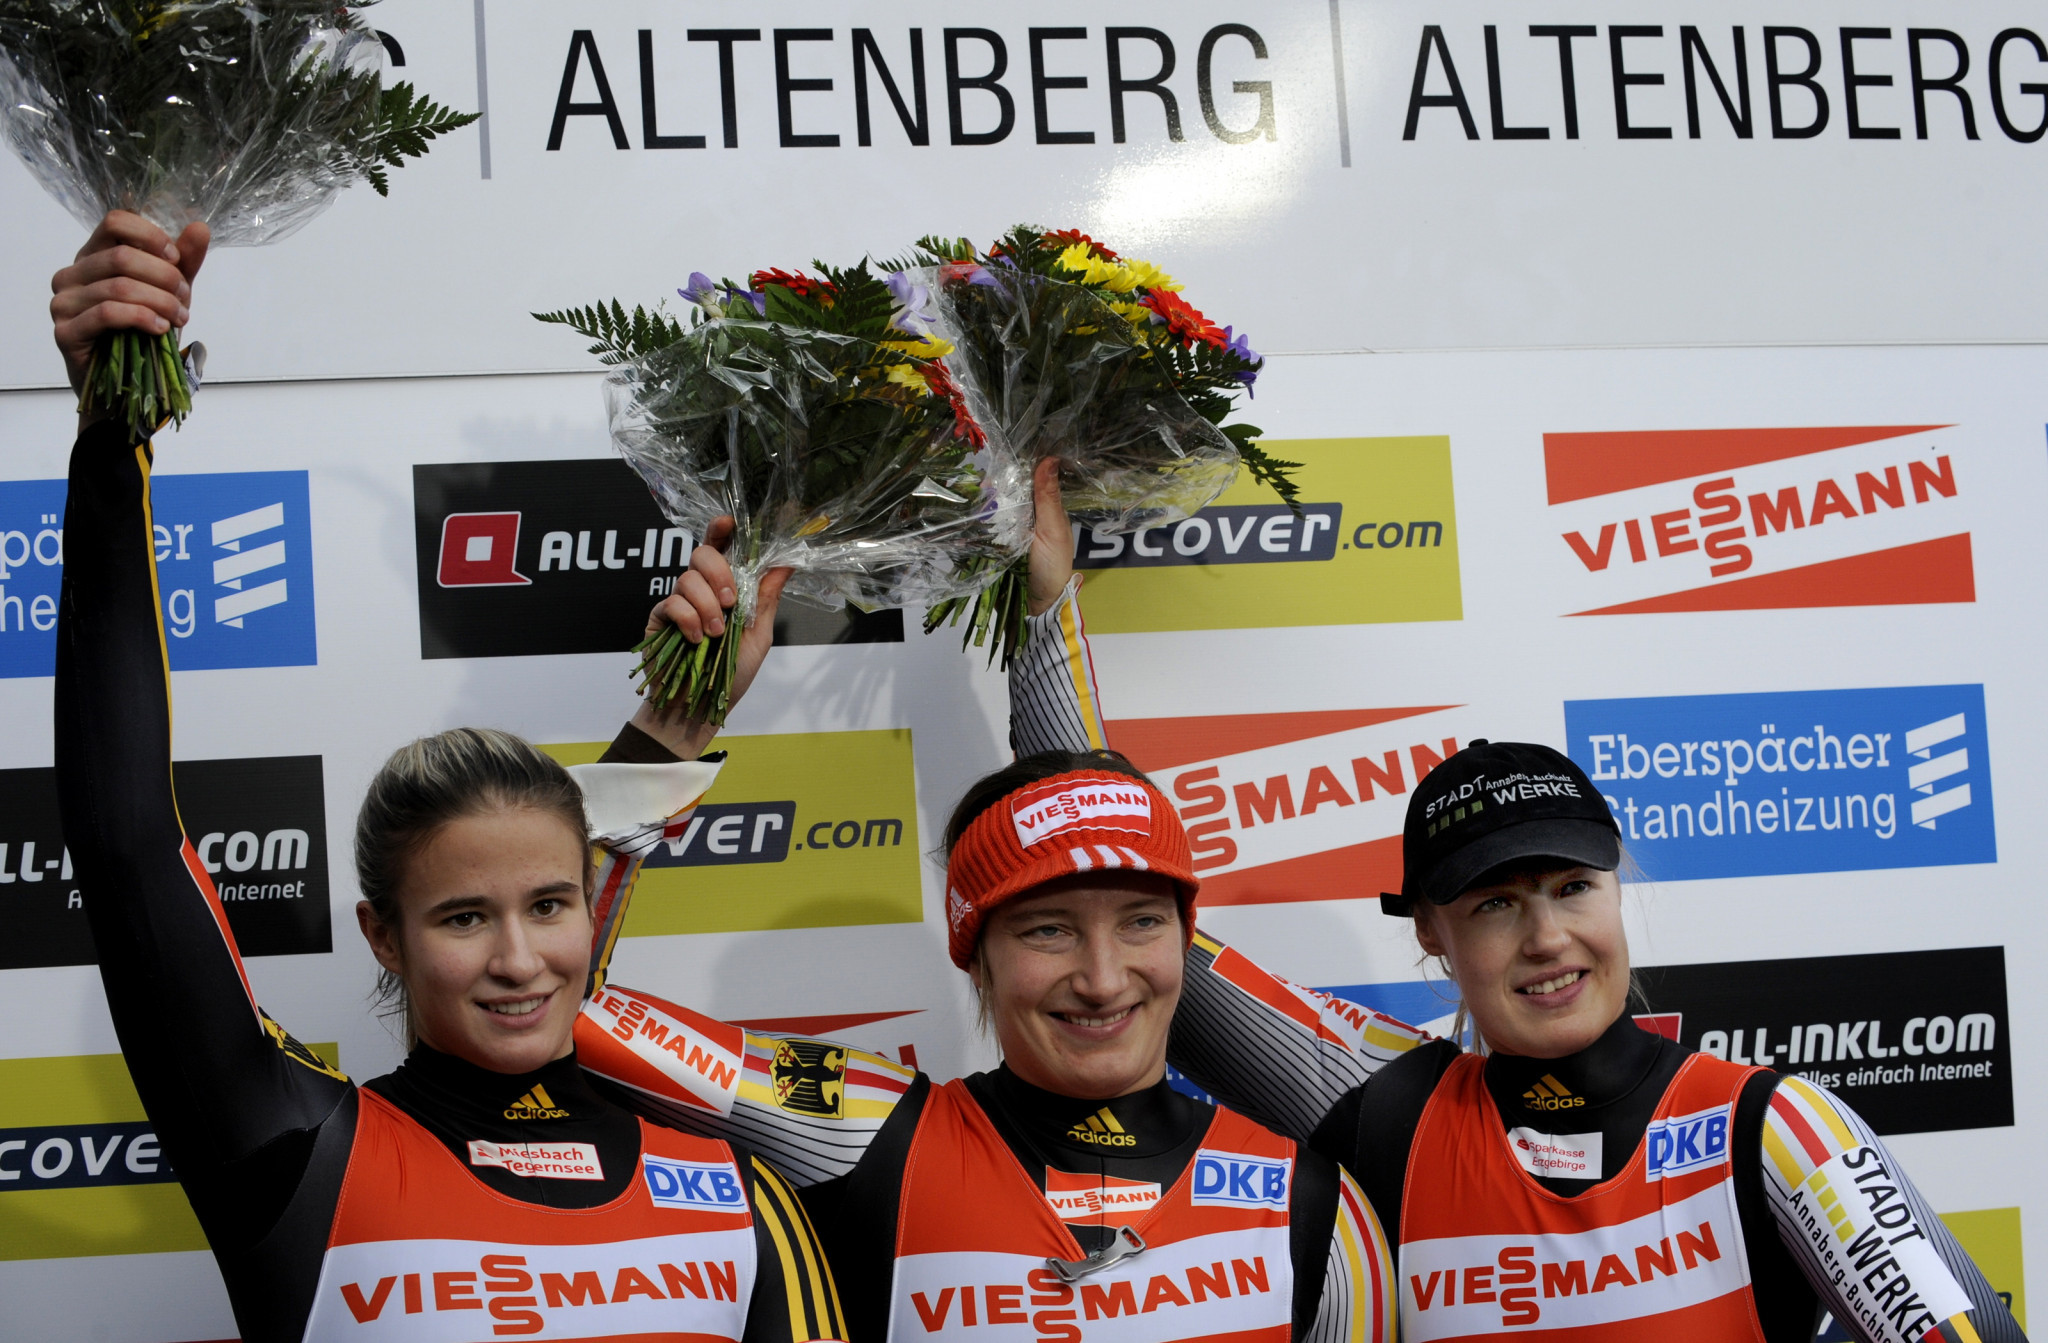 Altenberg has hosted a number of major events in sliding sports ©Getty Images